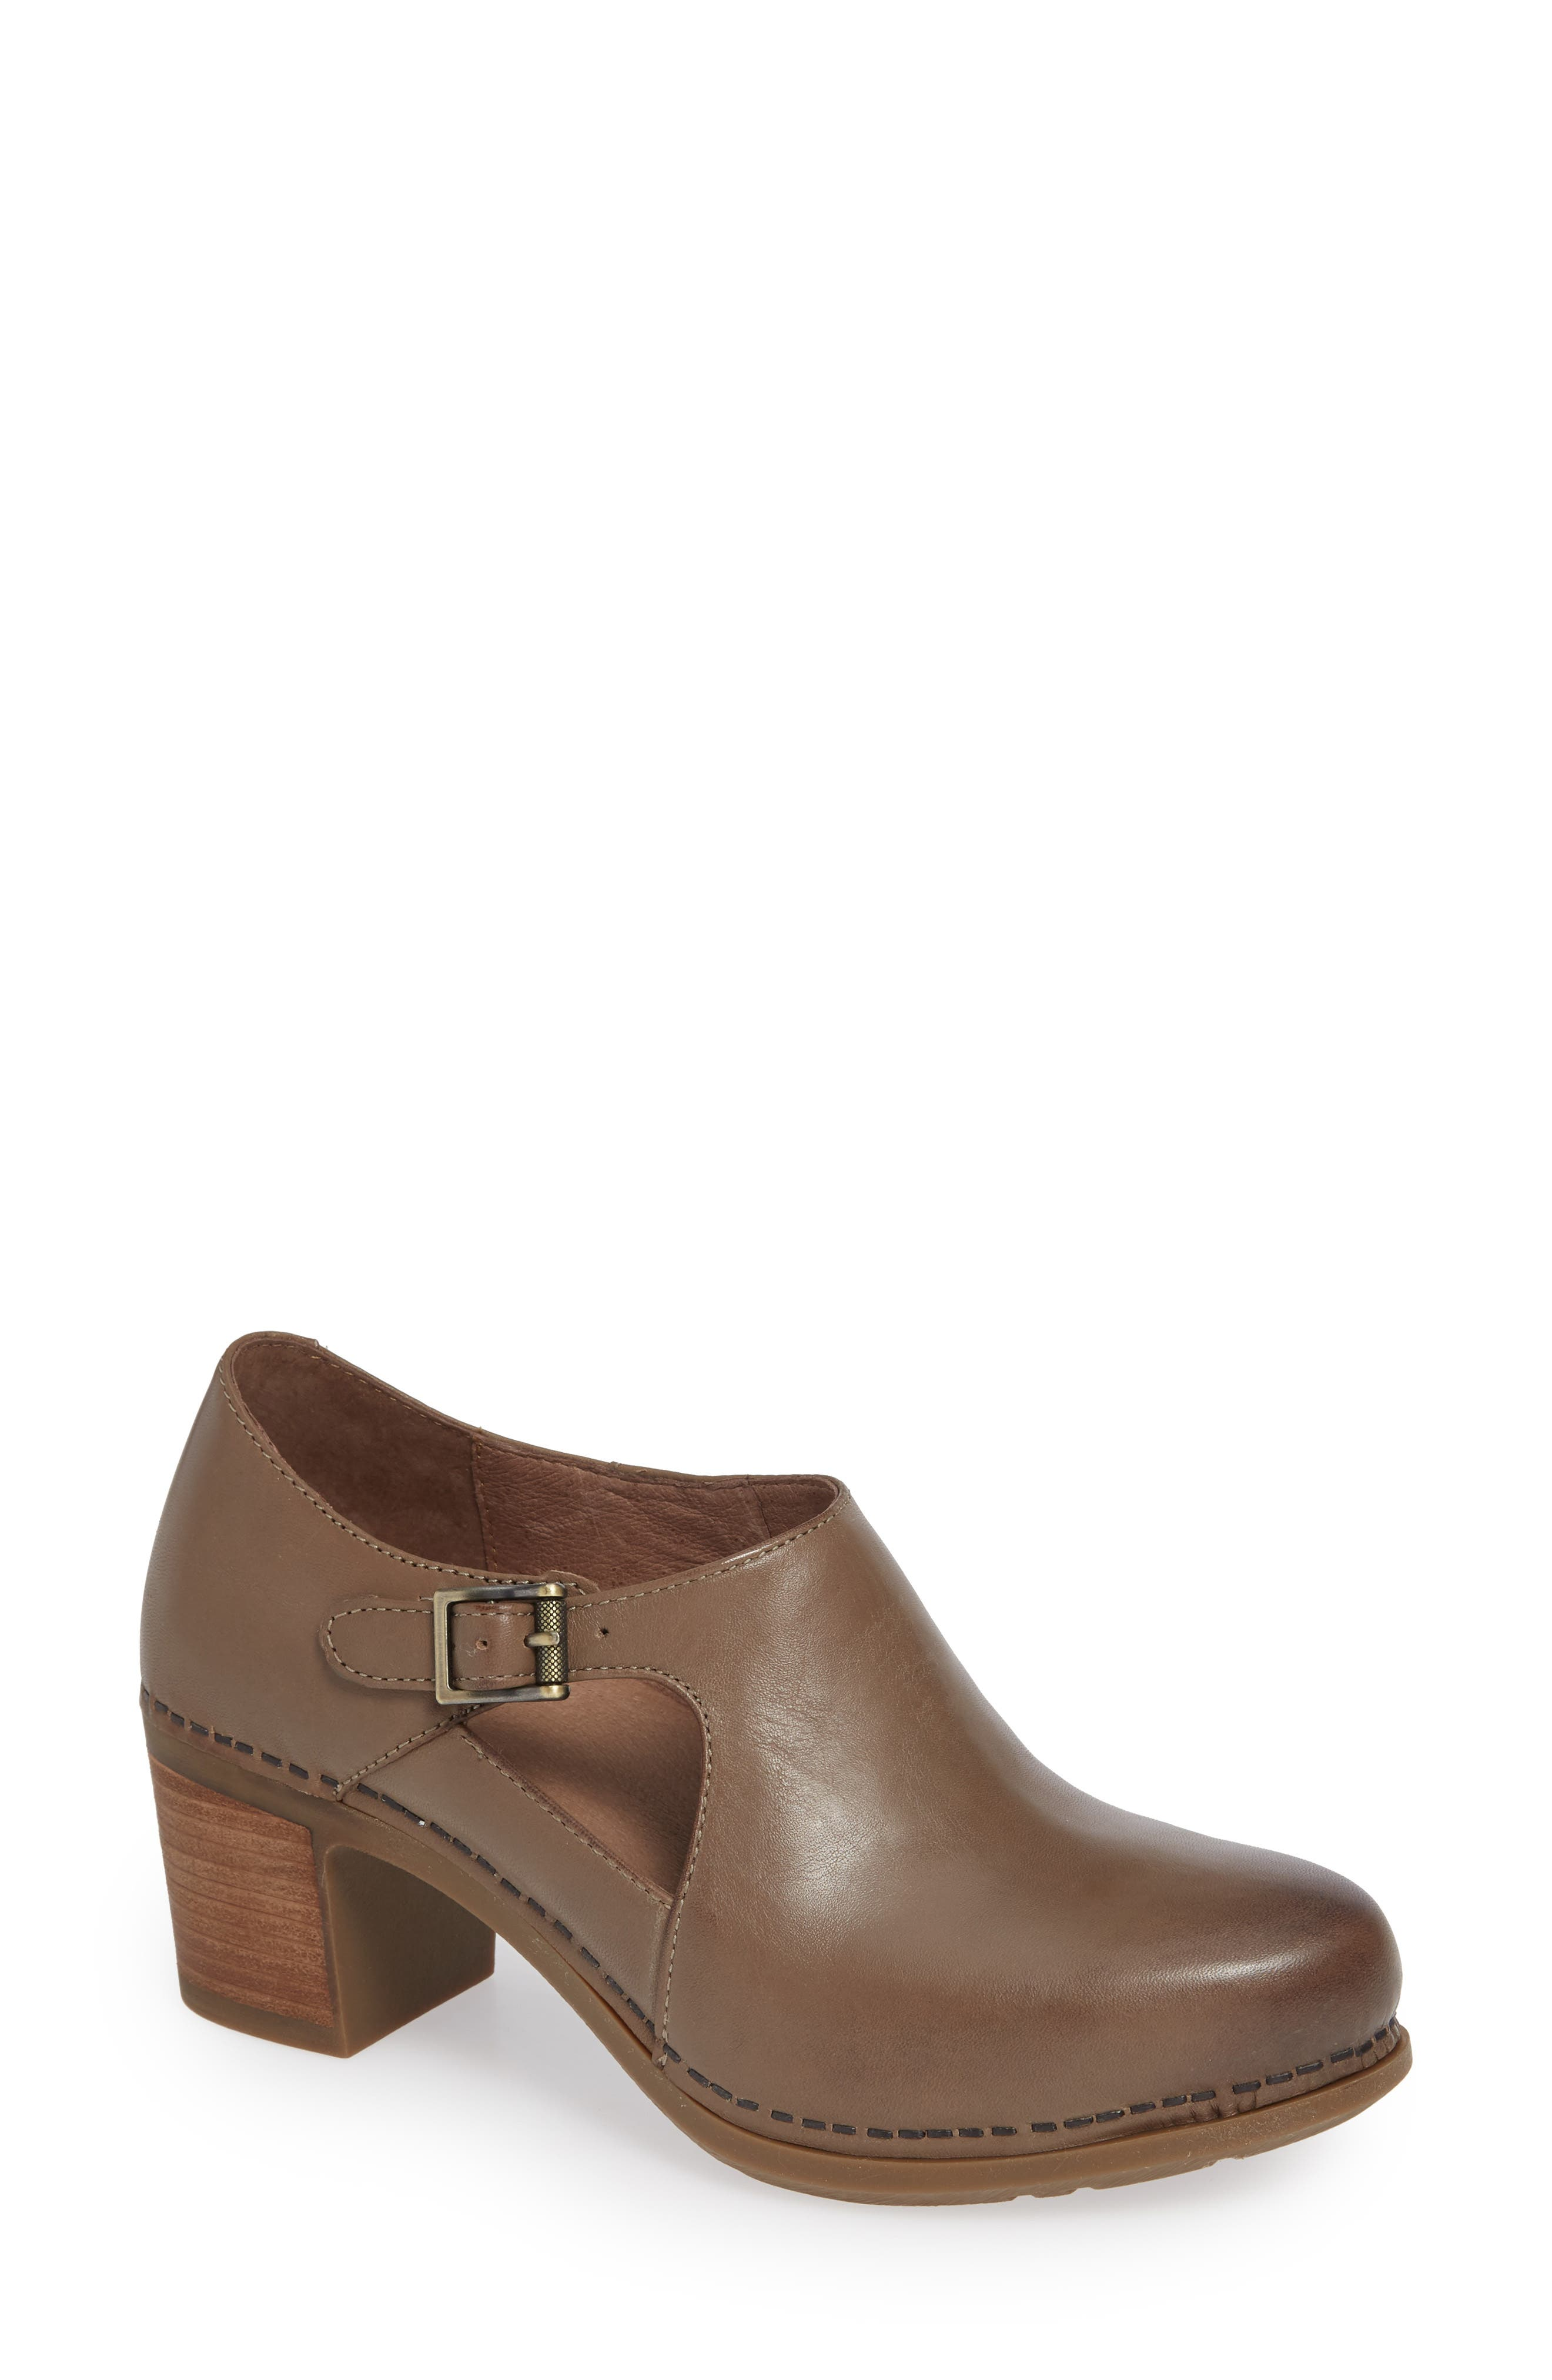 Hollie Bootie,                         Main,                         color, TAUPE BURNISHED LEATHER